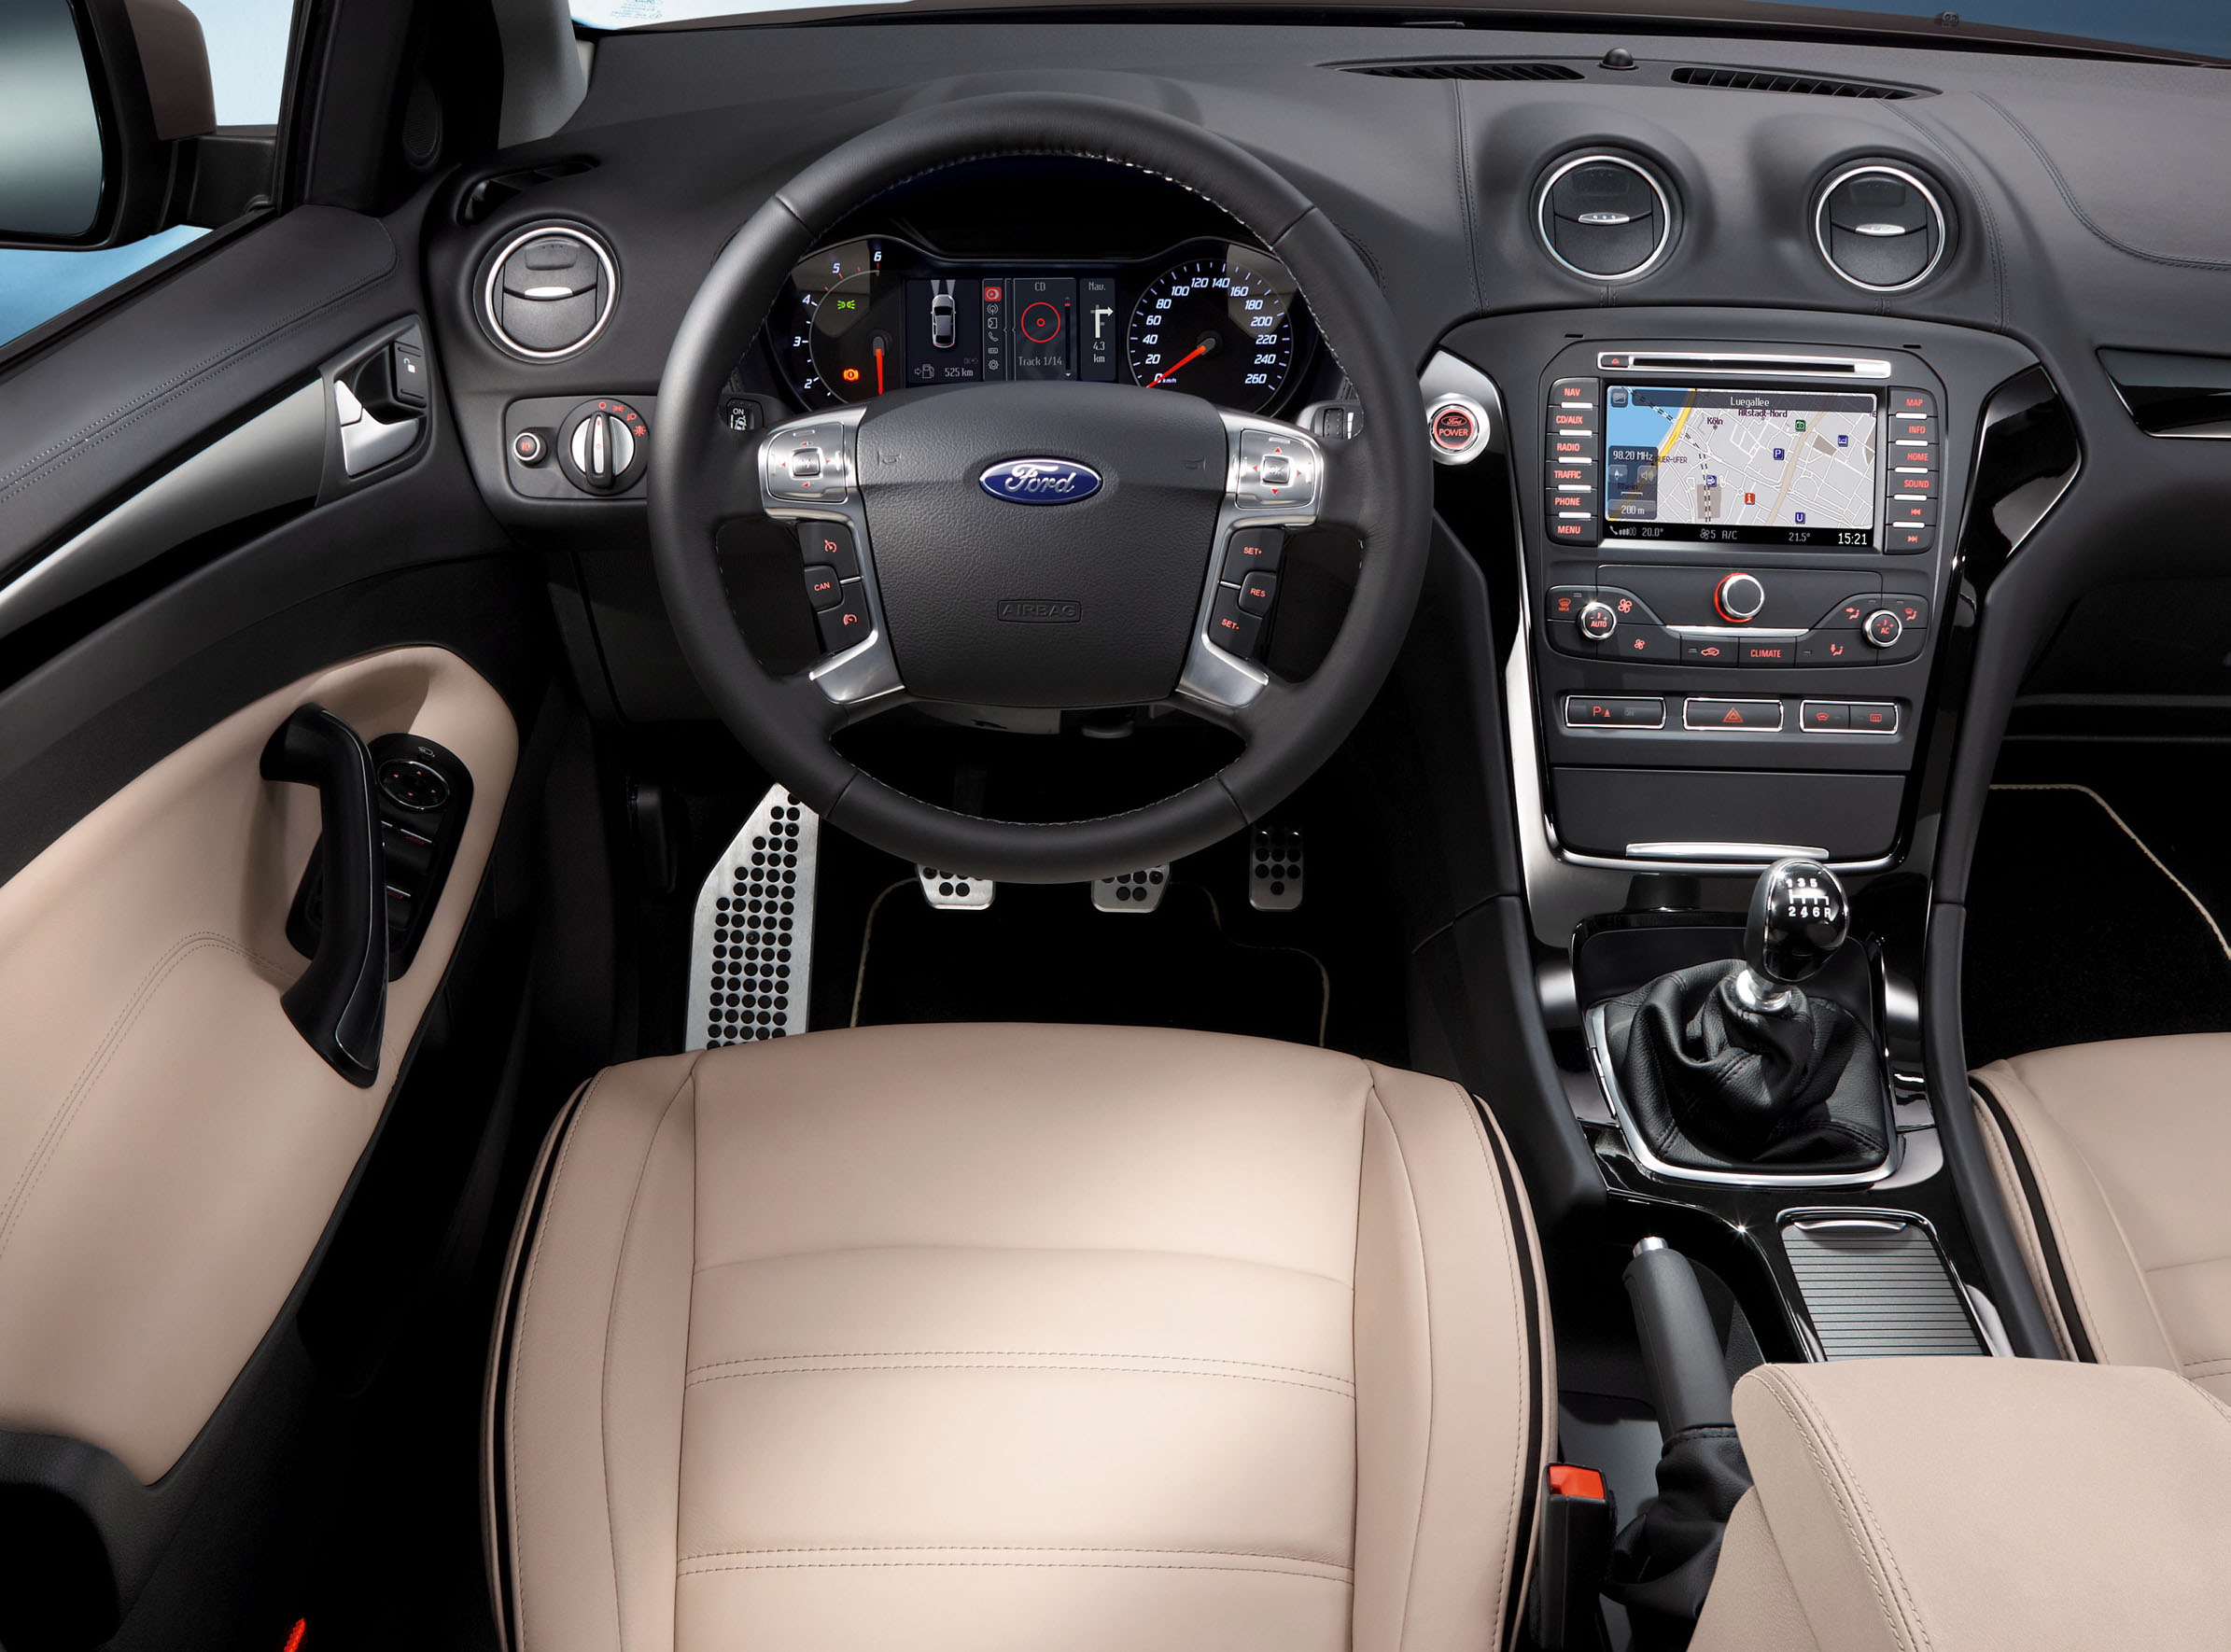 Ford mondeo and s max go 240 ps rm194k and rm199k image for Interior ford mondeo